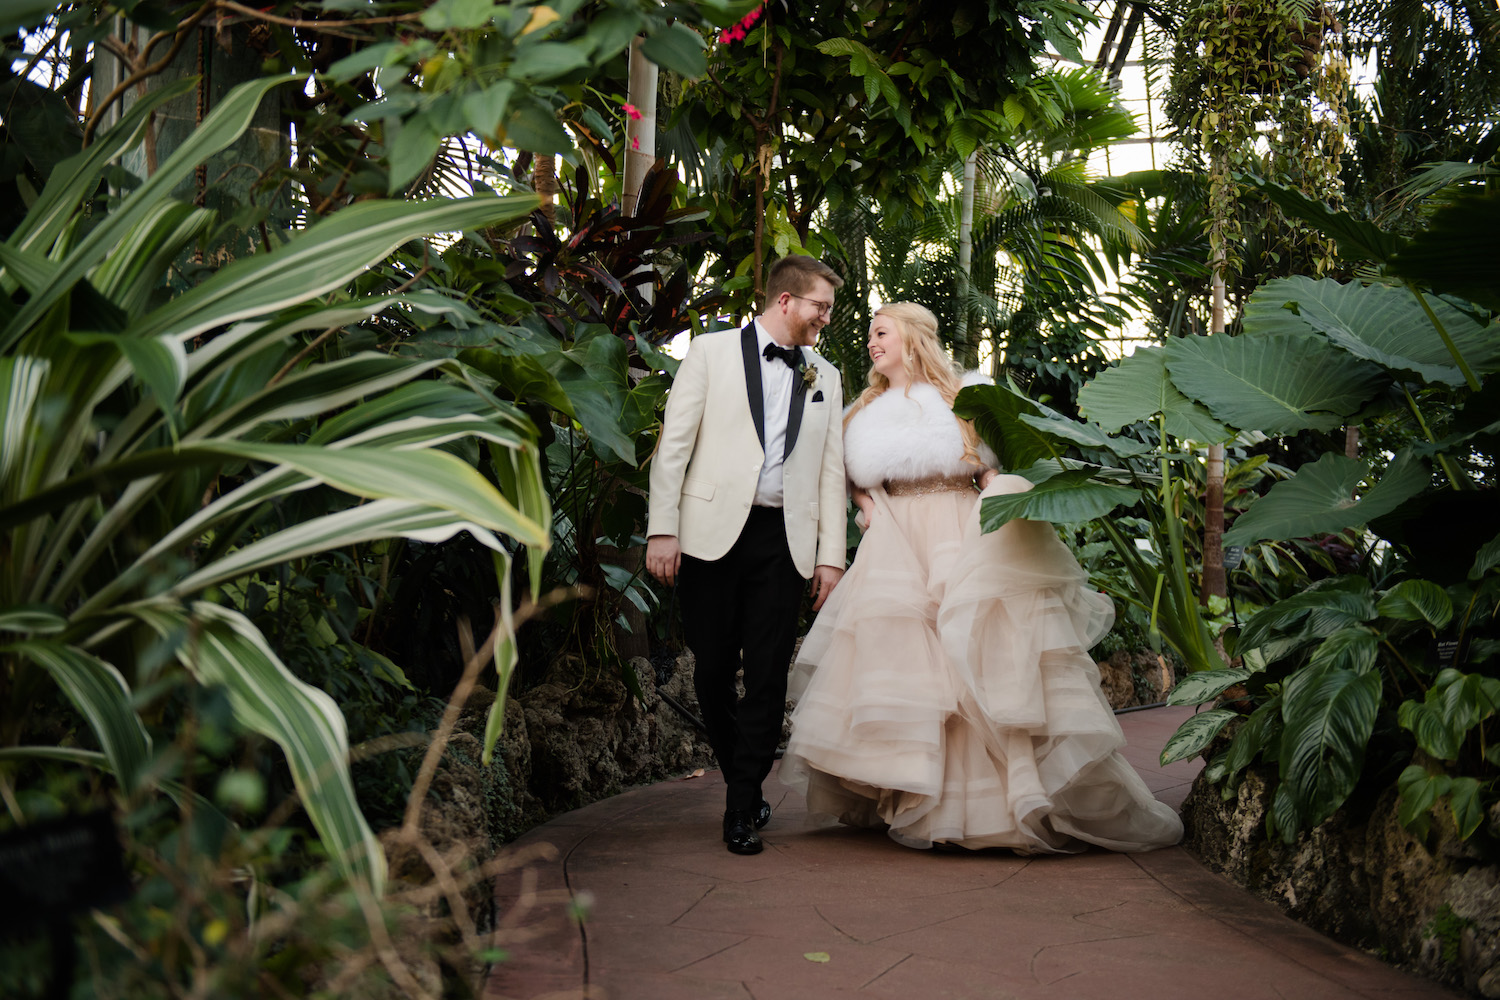 Lincoln Park Conservatory is the best downtown wedding photo location for chilly winter wedding days when you want to stick to the north side of the city. Other alternatives would be the Art Institute, Lyric Opera, or Union Station, but for weddings at hotels like the Peninsula, Ritz, or Four Seasons, it just makes sense to hop up to Lincoln Park. The diversity of backdrops available here is fantastic as well since you can make use of the conservatory as well as the outdoor gardens and promenade and also have the skyline backdrop right at your fingertips.